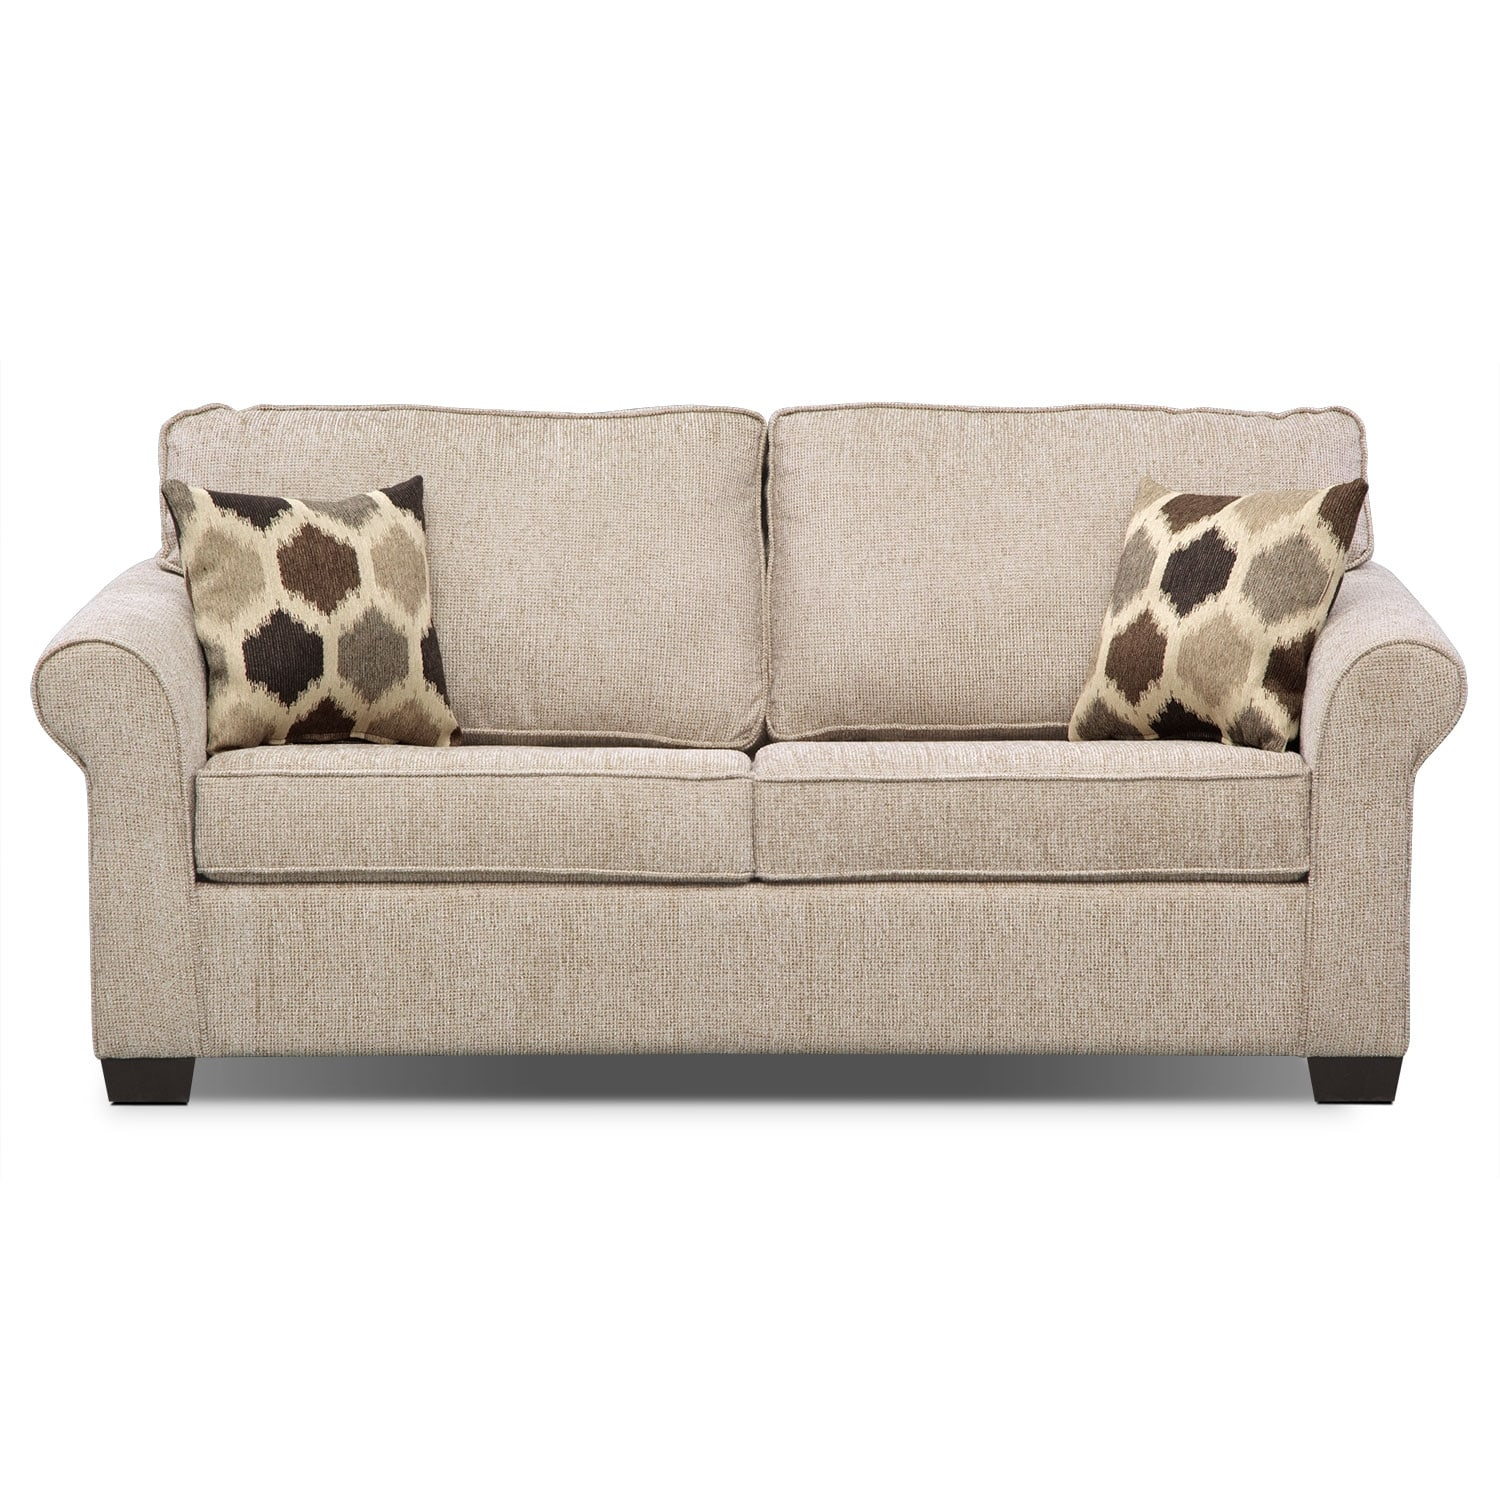 Fletcher full innerspring sleeper sofa value city furniture Sofa sleeper loveseat